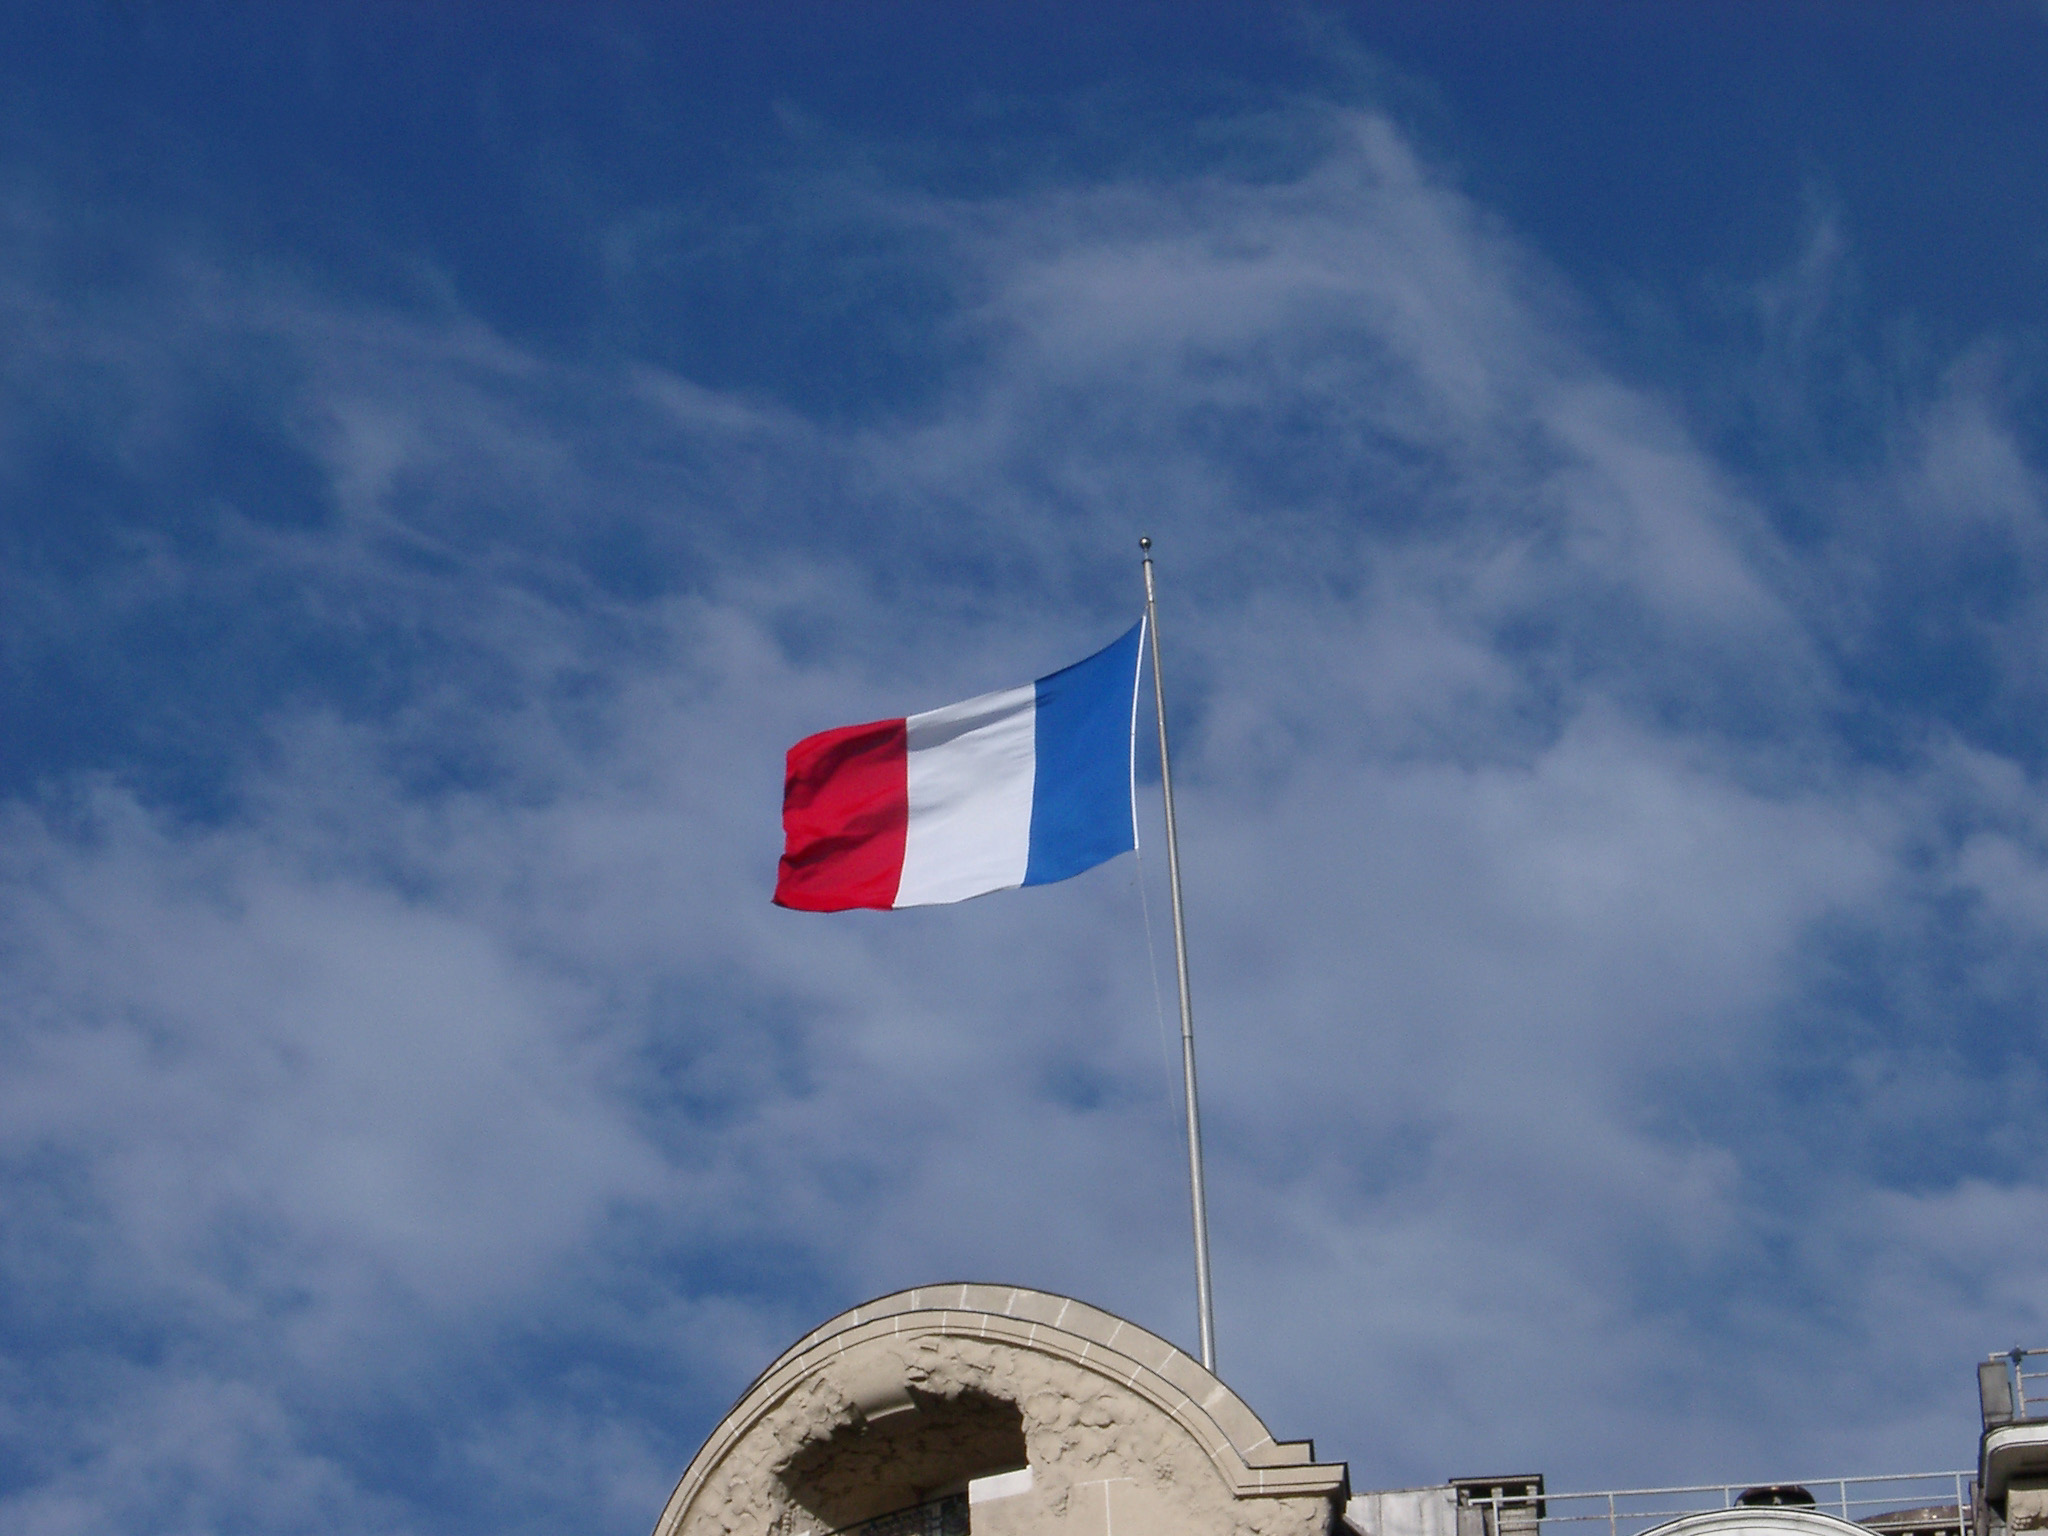 The Tricolor Or French National Flag Flying From A - Flying French Flag , HD Wallpaper & Backgrounds